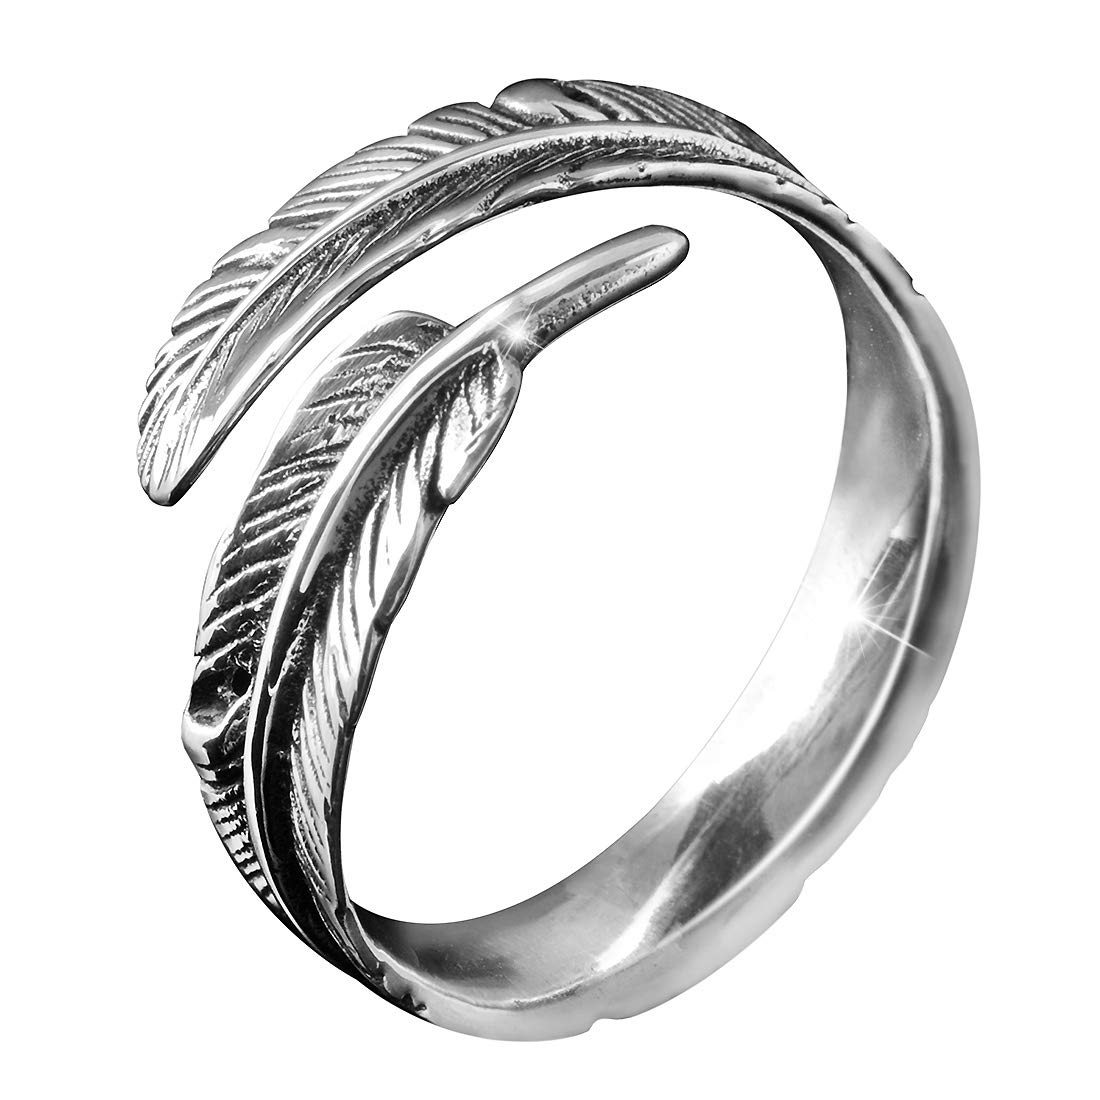 Feathers Antique Silver Women's Ring MATERIA by Matthias Wagner #SR-23